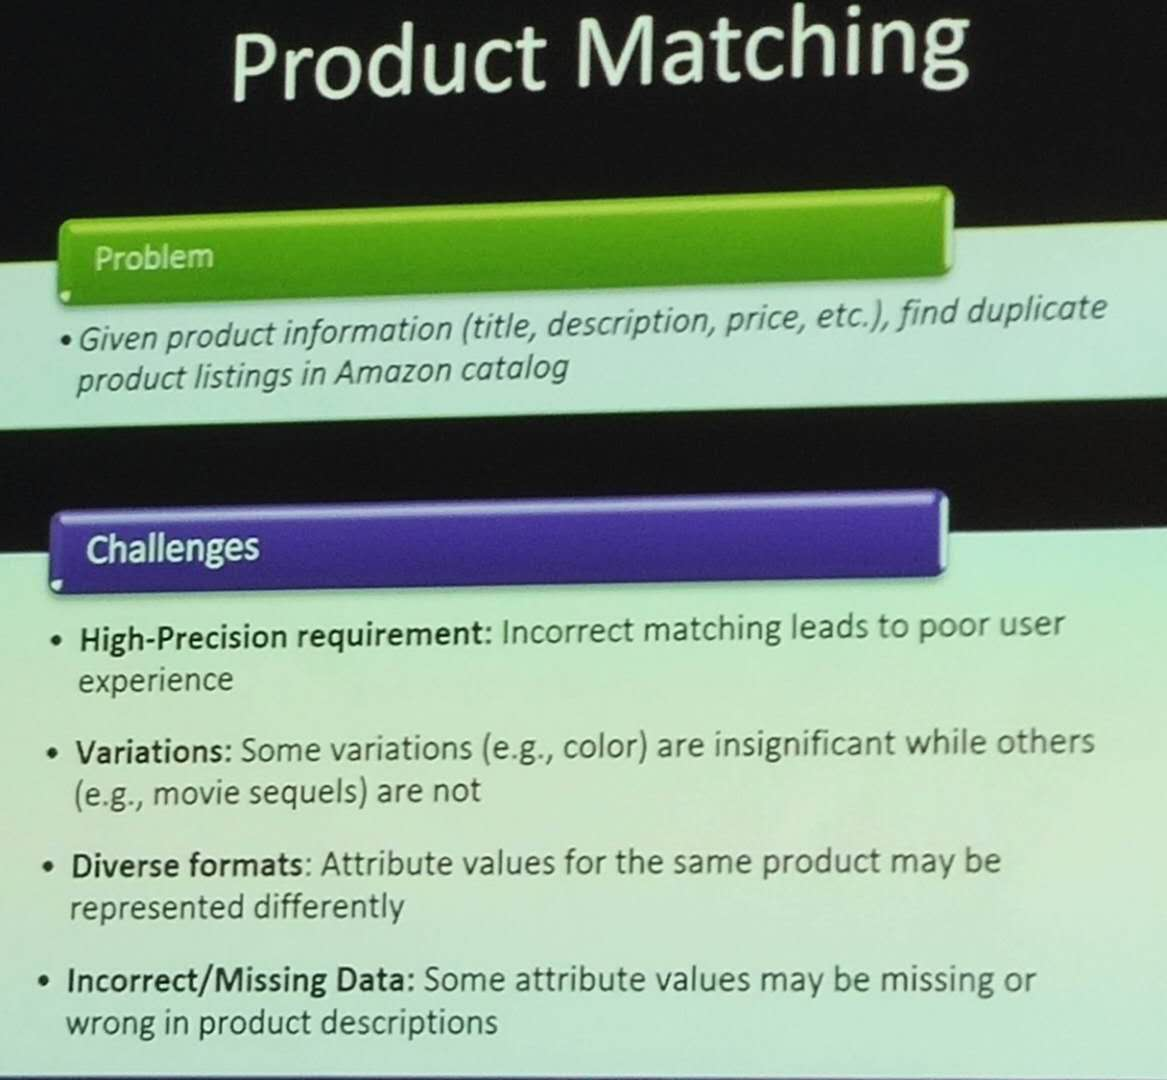 pakdd product matching